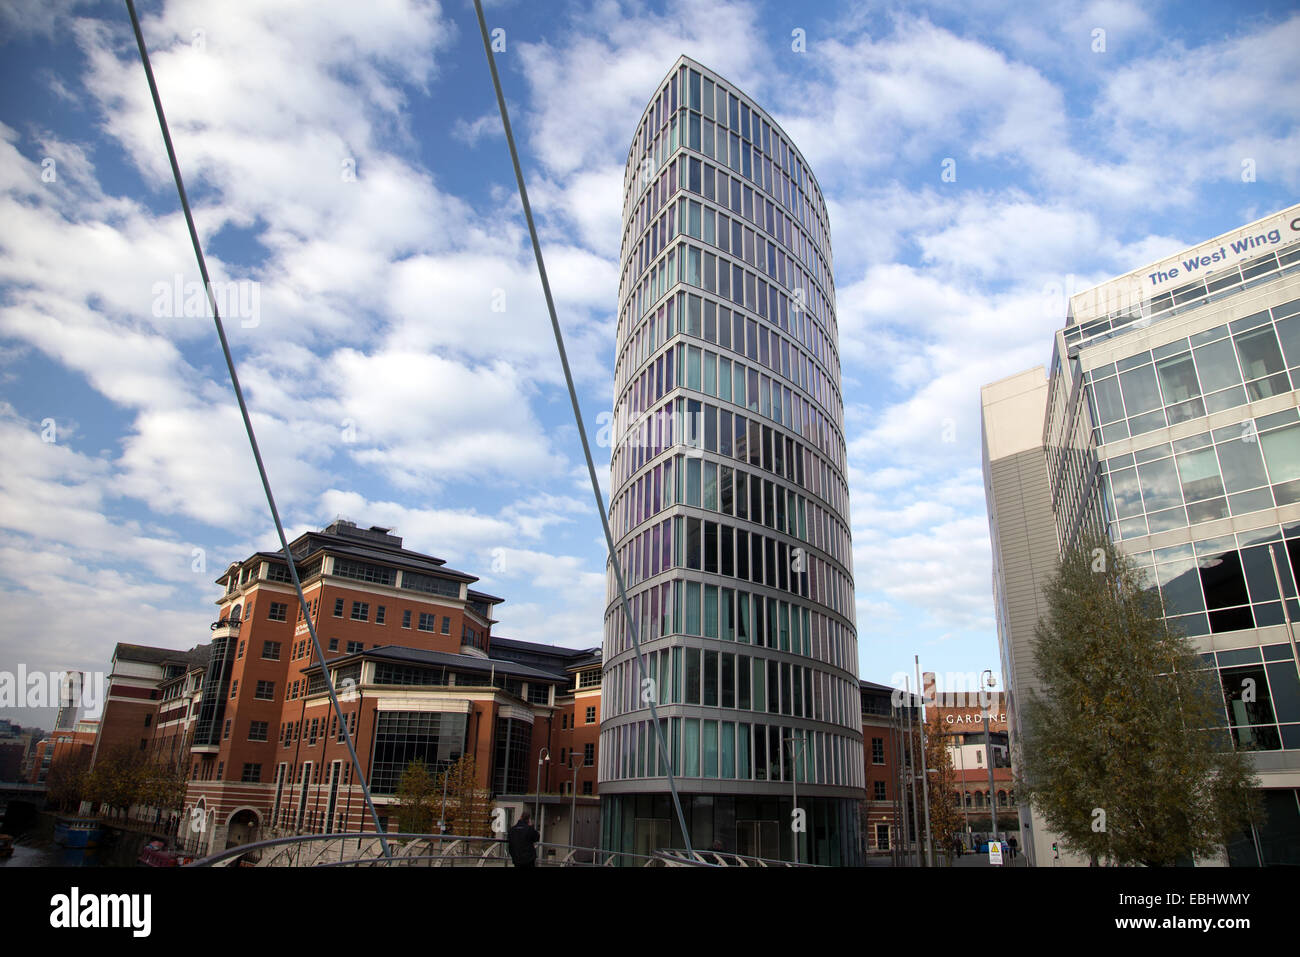 Temple Quays in Bristol's Temple Quarter regeneration zone with office buildings - Stock Image